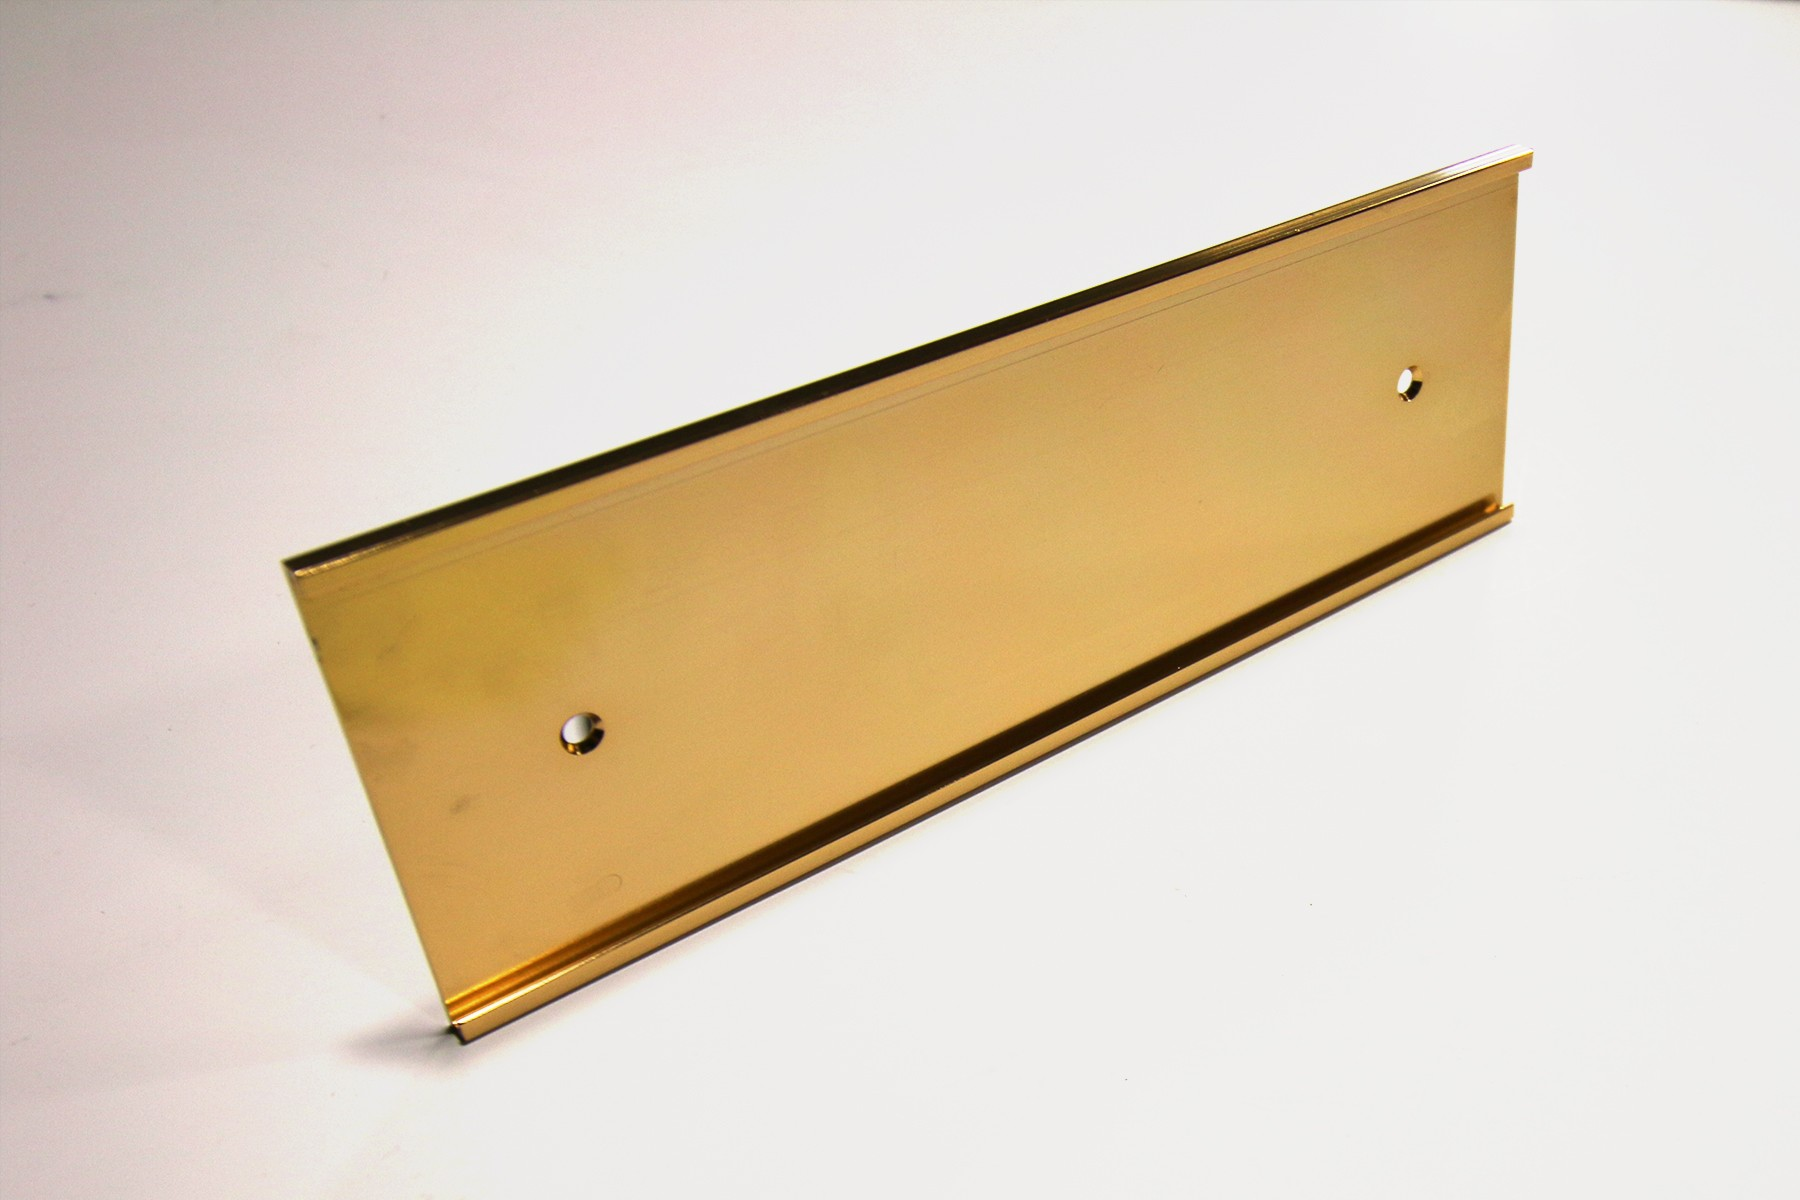 2-1/2 x 18 Wall Holder, Gold